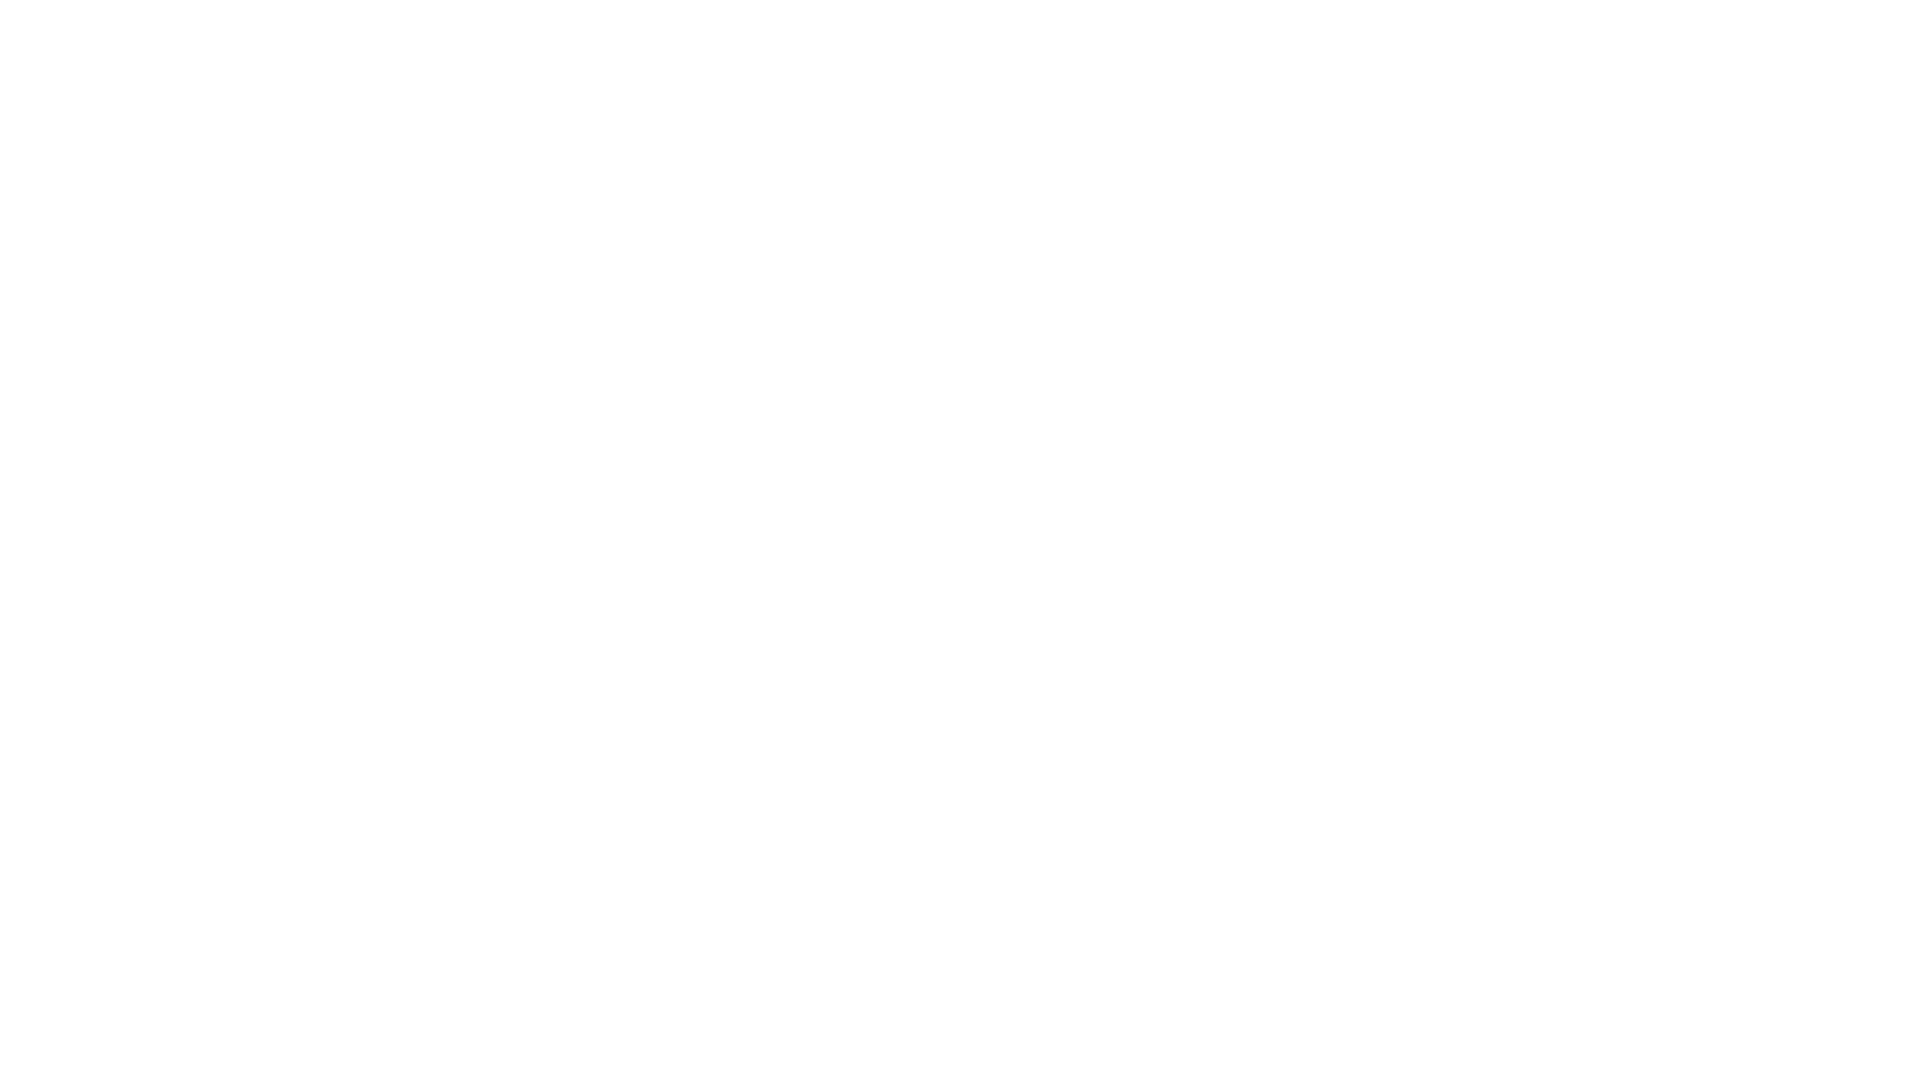 Keeping Brady Strong